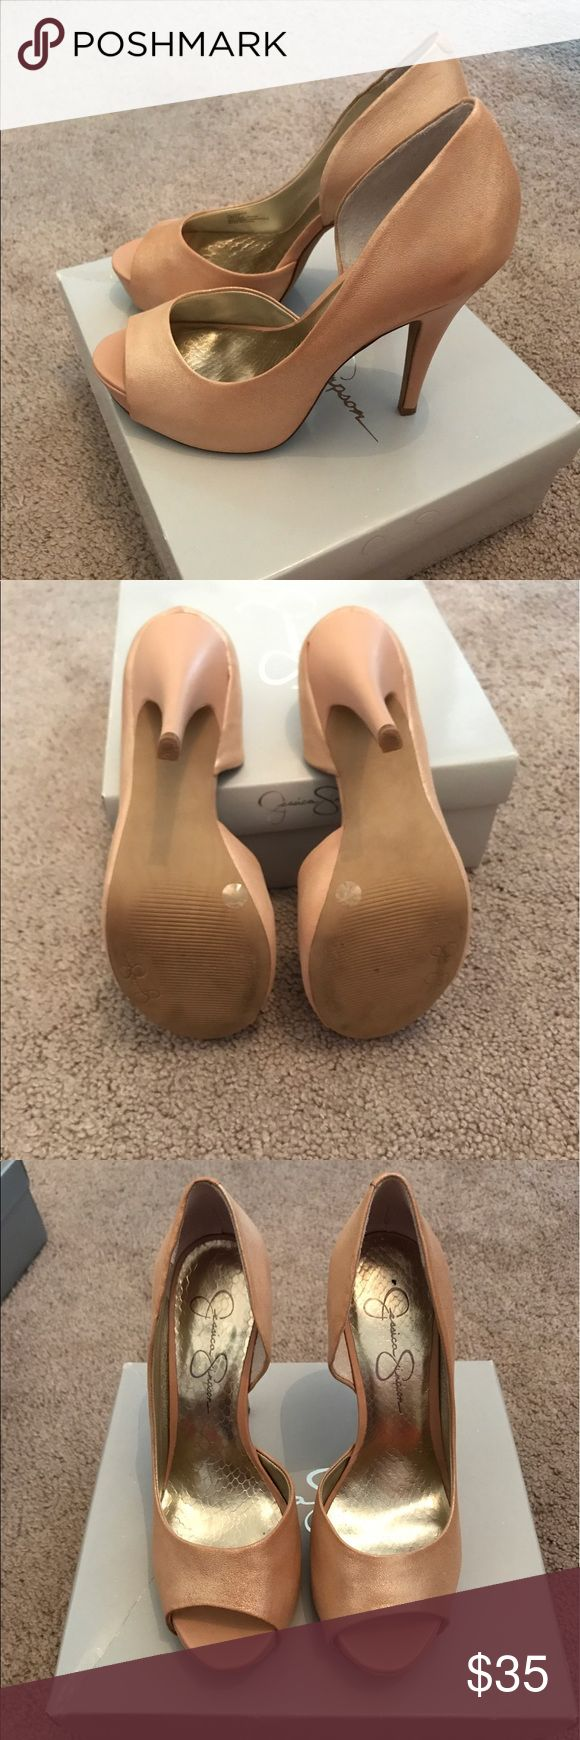 Jessica Simpson heels Like new, worn once. Powder gold. Jessica Simpson Shoes Heels